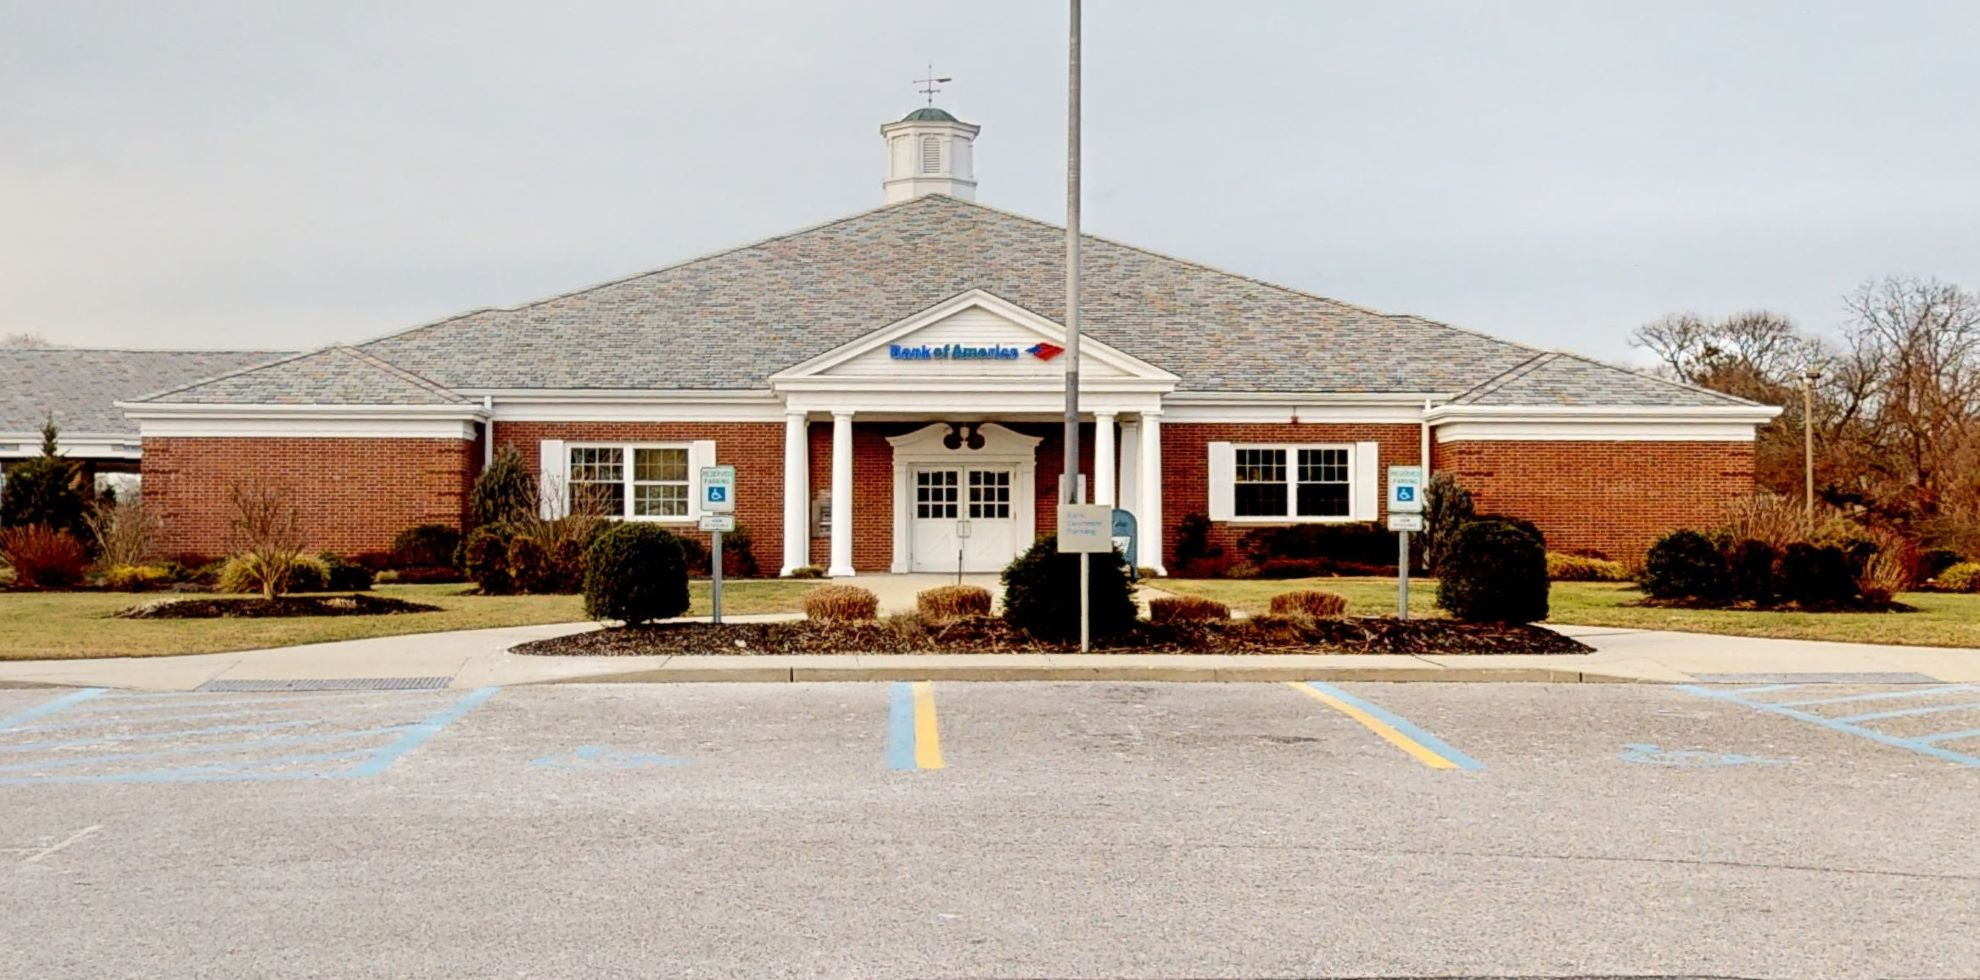 Bank of America financial center with drive-thru ATM | 345 E Main St, East Islip, NY 11730